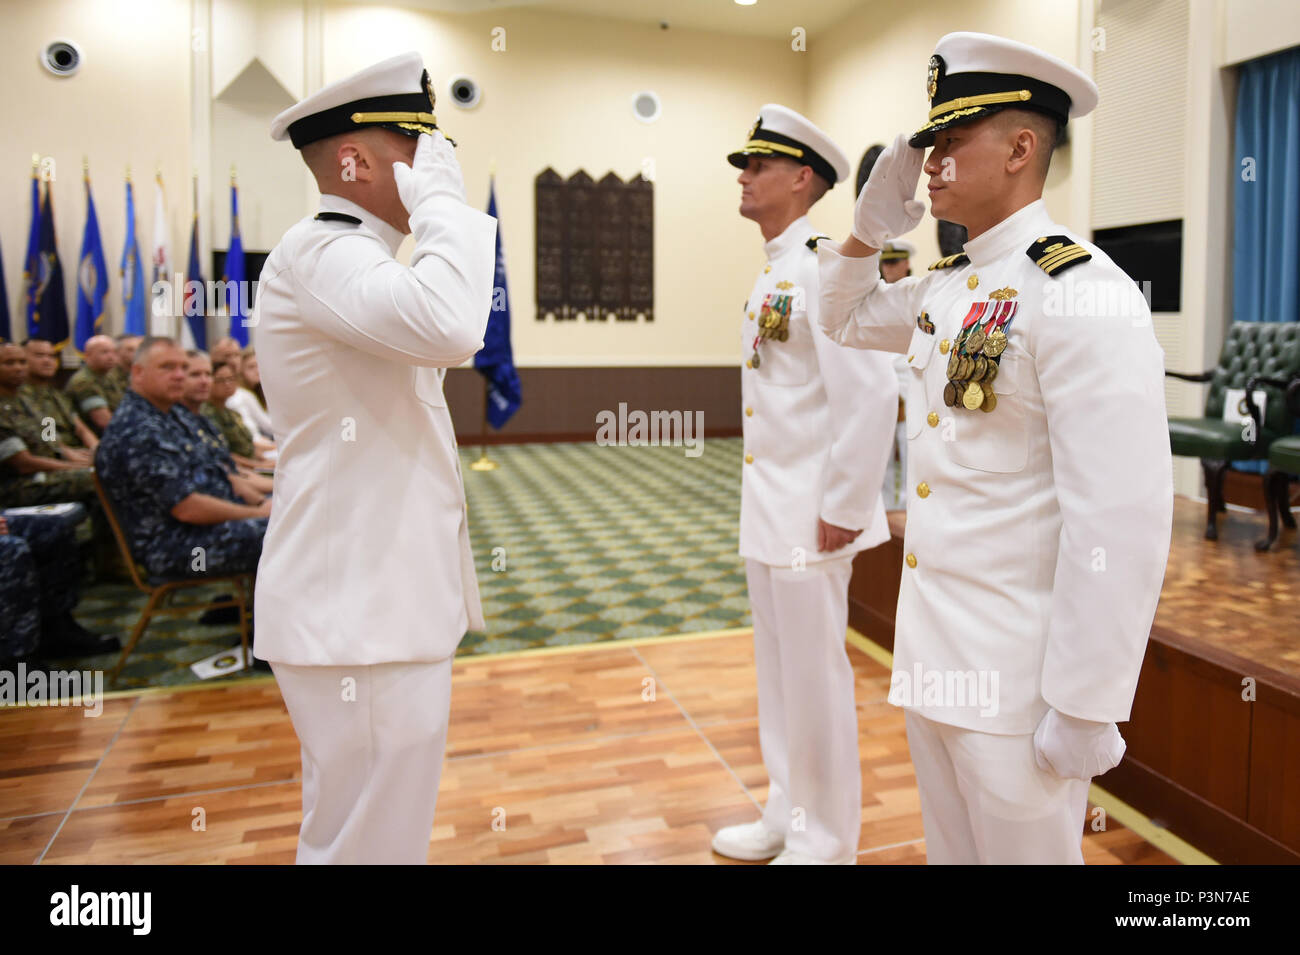 160708-N-DH124-170  OKINAWA, Japan (July 8, 2016) - Cmdr. James Cho salutes Commander, 30th Naval Construction Regiment, Capt. Jeffrey Killian, official taking charge as commanding officer of Naval Mobile Construction Battalion (NMCB) 4 on Camp Shields in Okinawa, Japan, Jul. 8.  Cho transferred from Naval Facilities Engineering Command (NAVFAC) Southwest, serving as the Public Works Officer at Naval Base San Diego.  (U.S. Navy photo by Mass Communication Specialist 1st Class Rosalie Chang/Released) Stock Photo